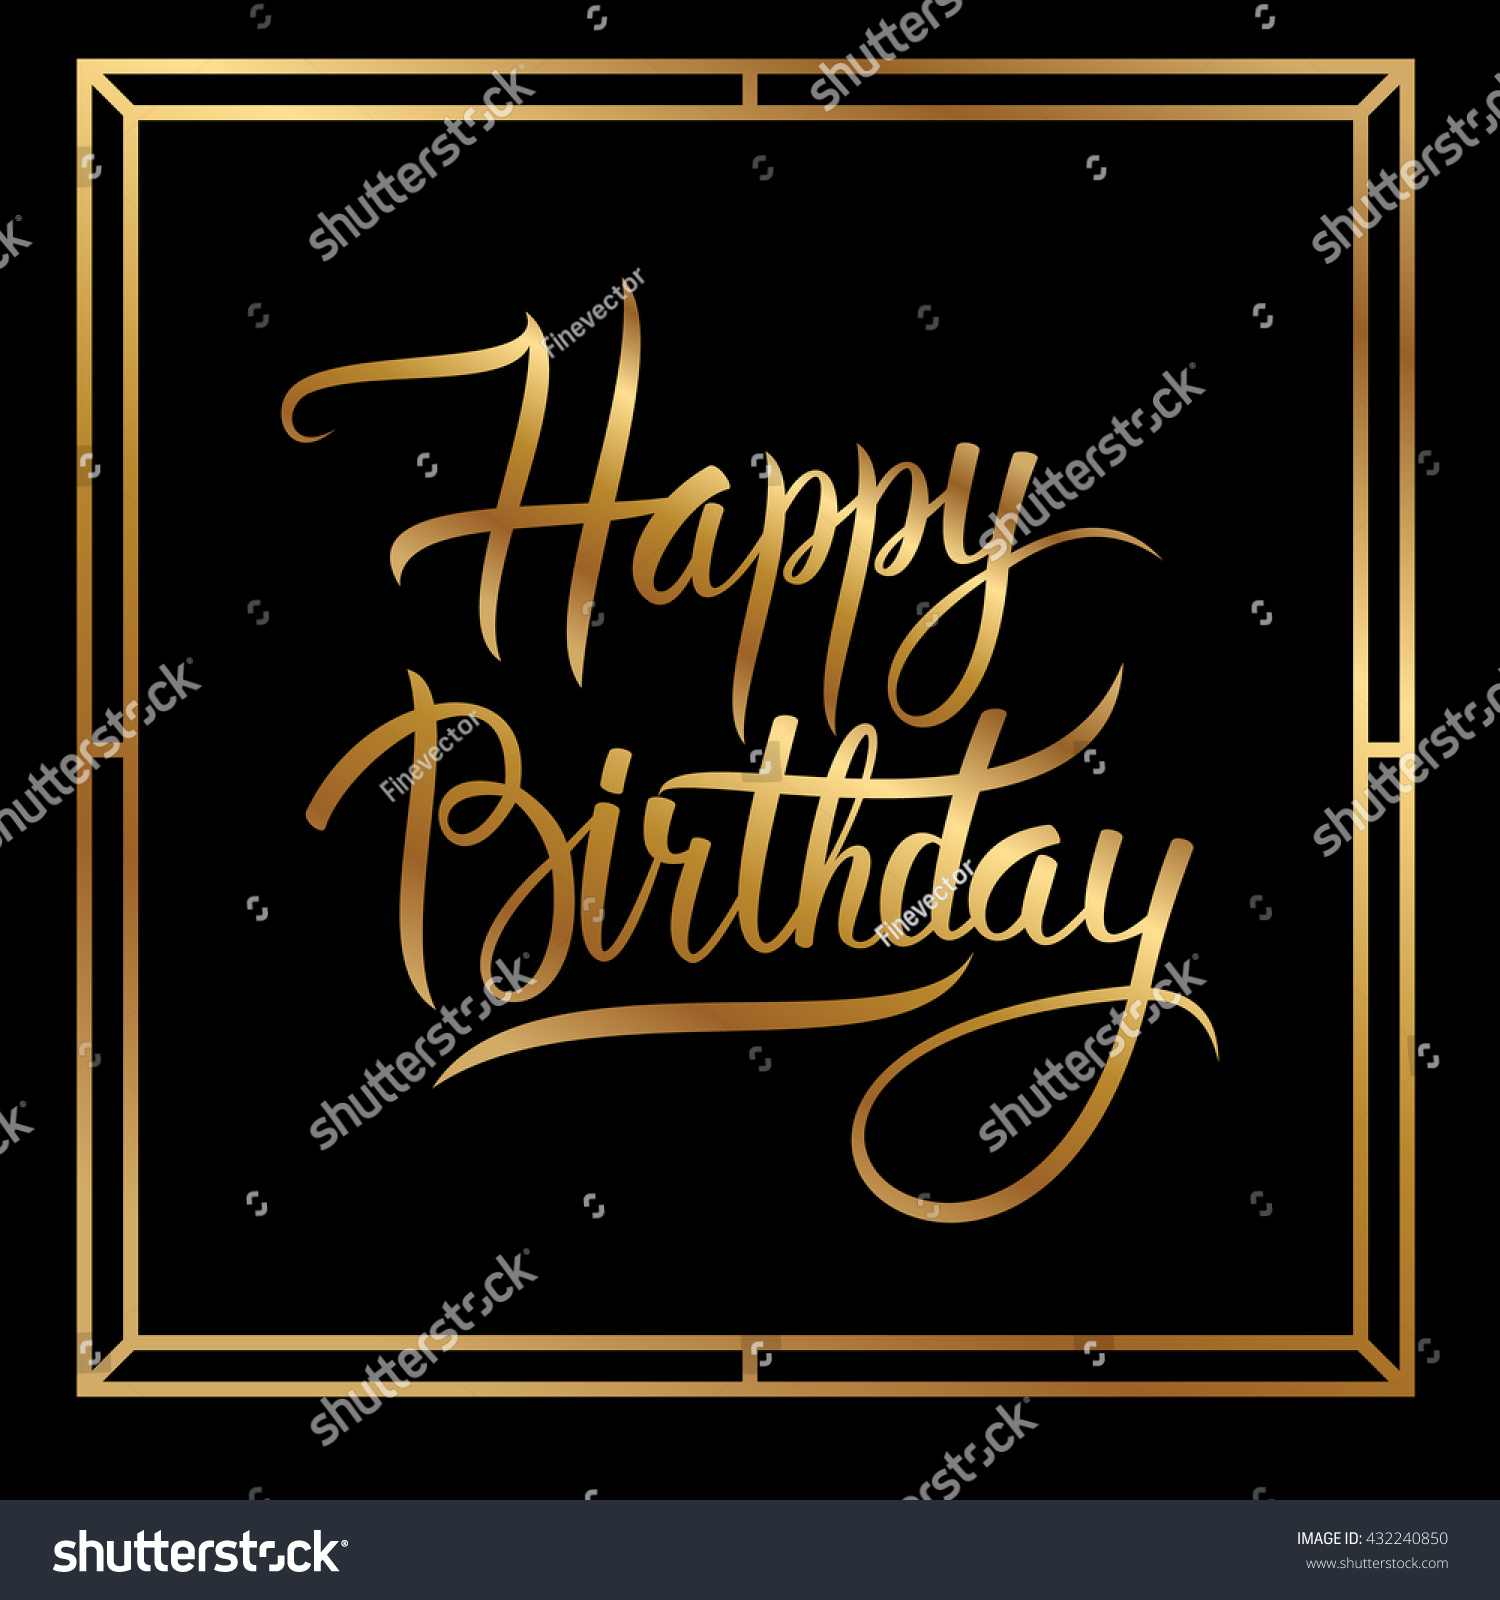 Happy Birthday Greeting Card Gold Lettering Design On Black Background Calligraphic Phrase Vector